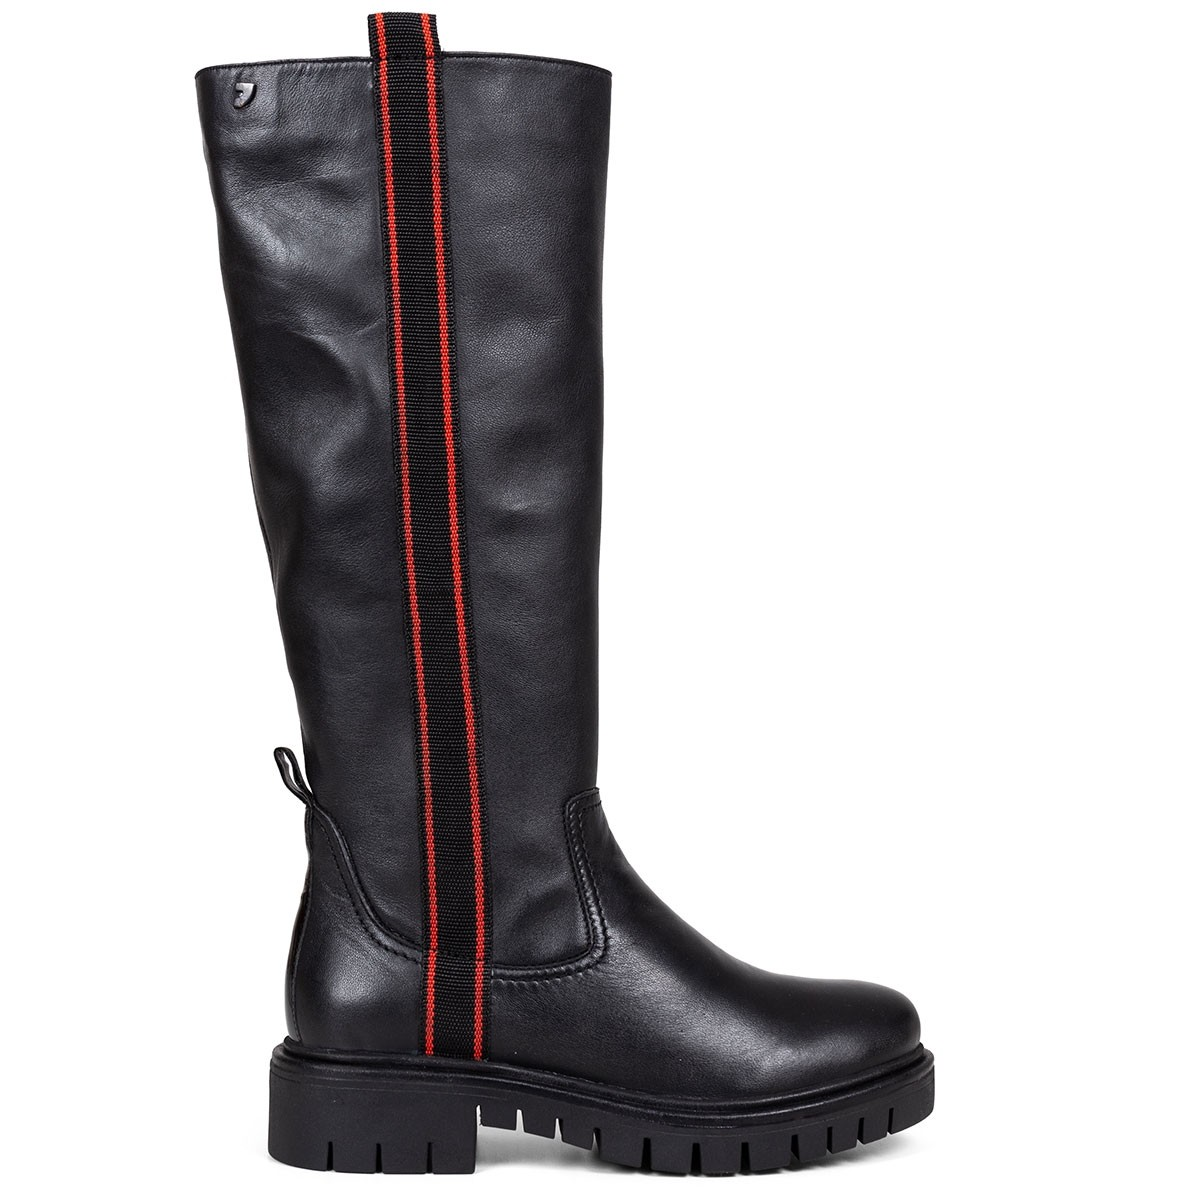 56553 Black BOOTS 1